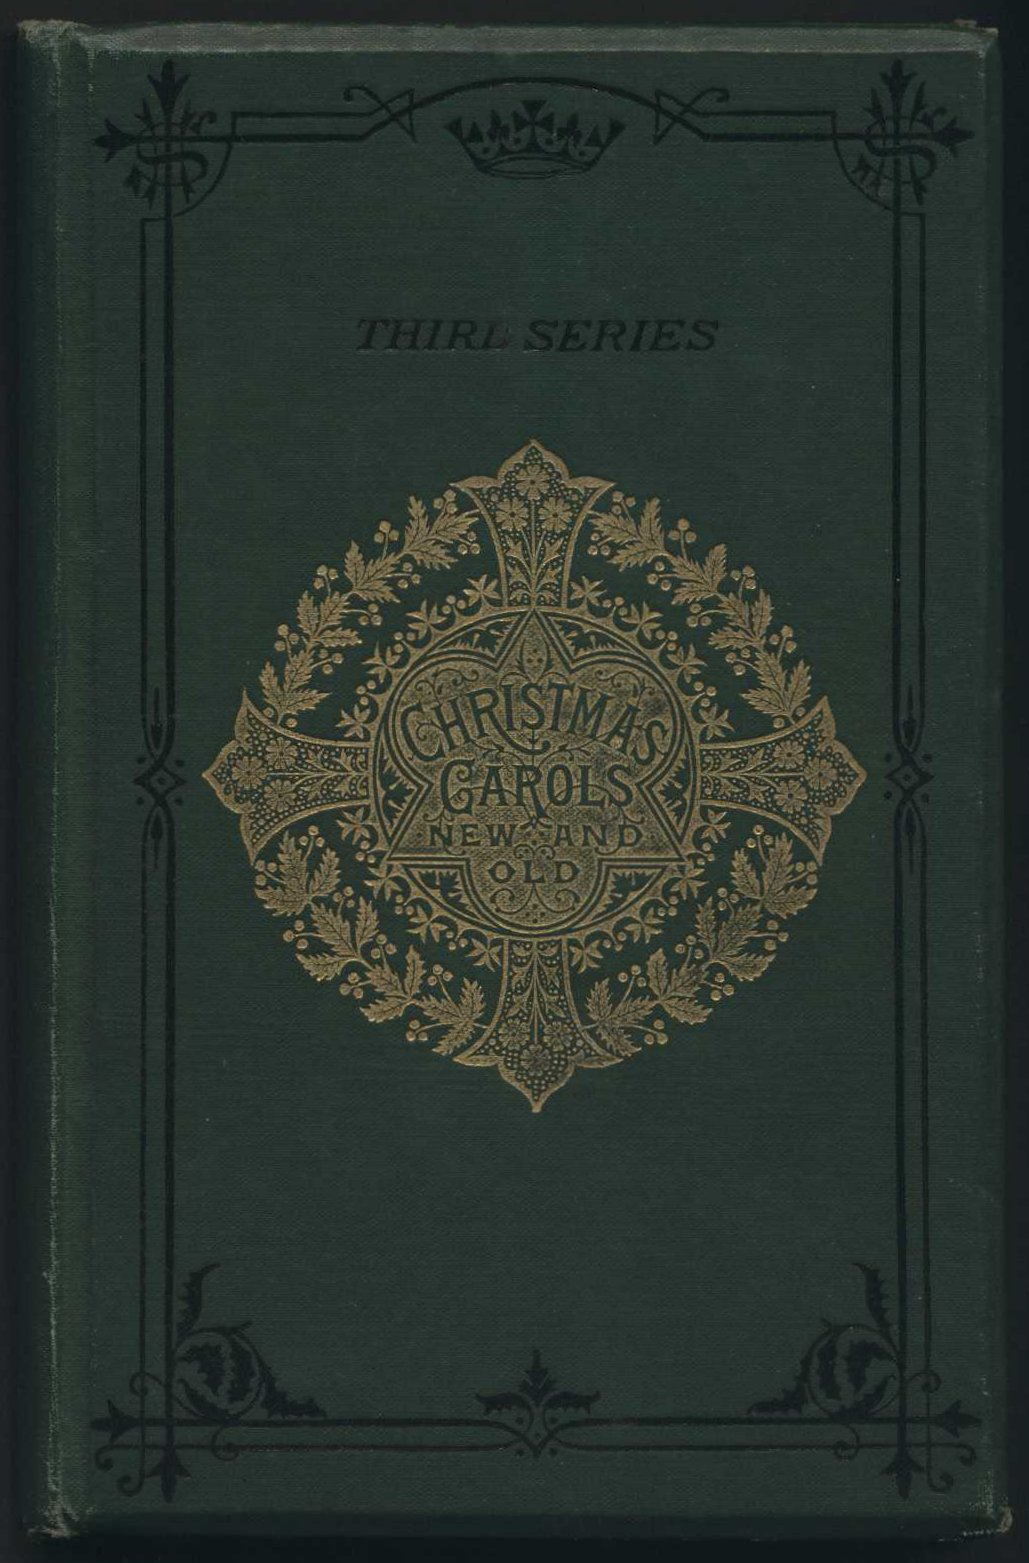 Christmas carols new and old. Third series. London: Novello and Co., [1878?]